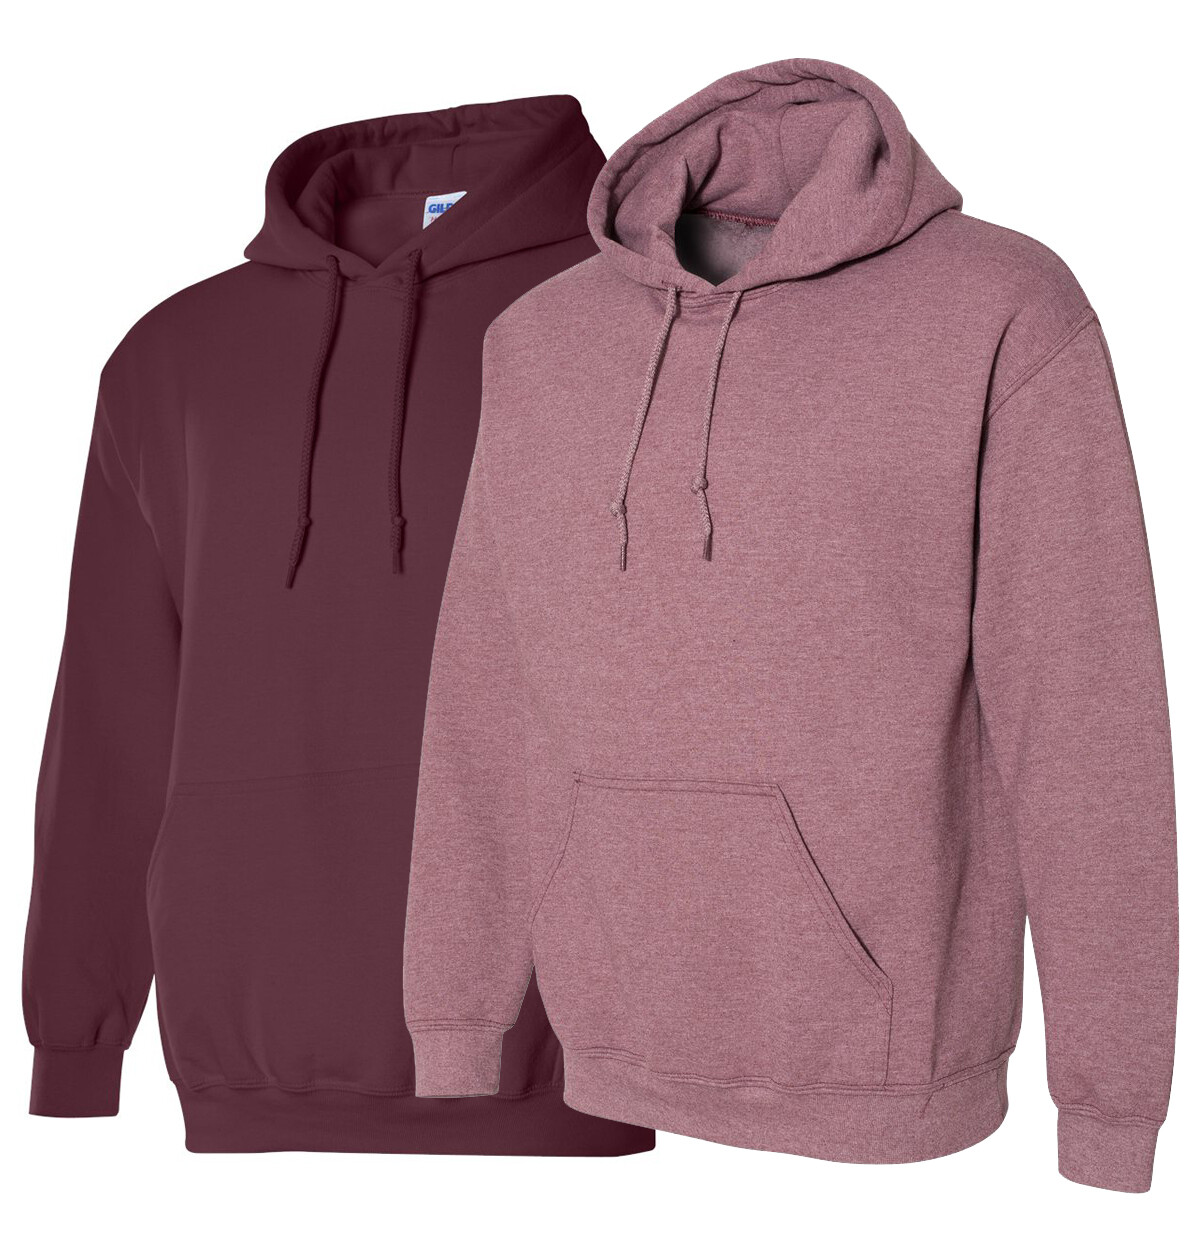 St. James Saints Heavy Blend Hooded Sweatshirt - Adult